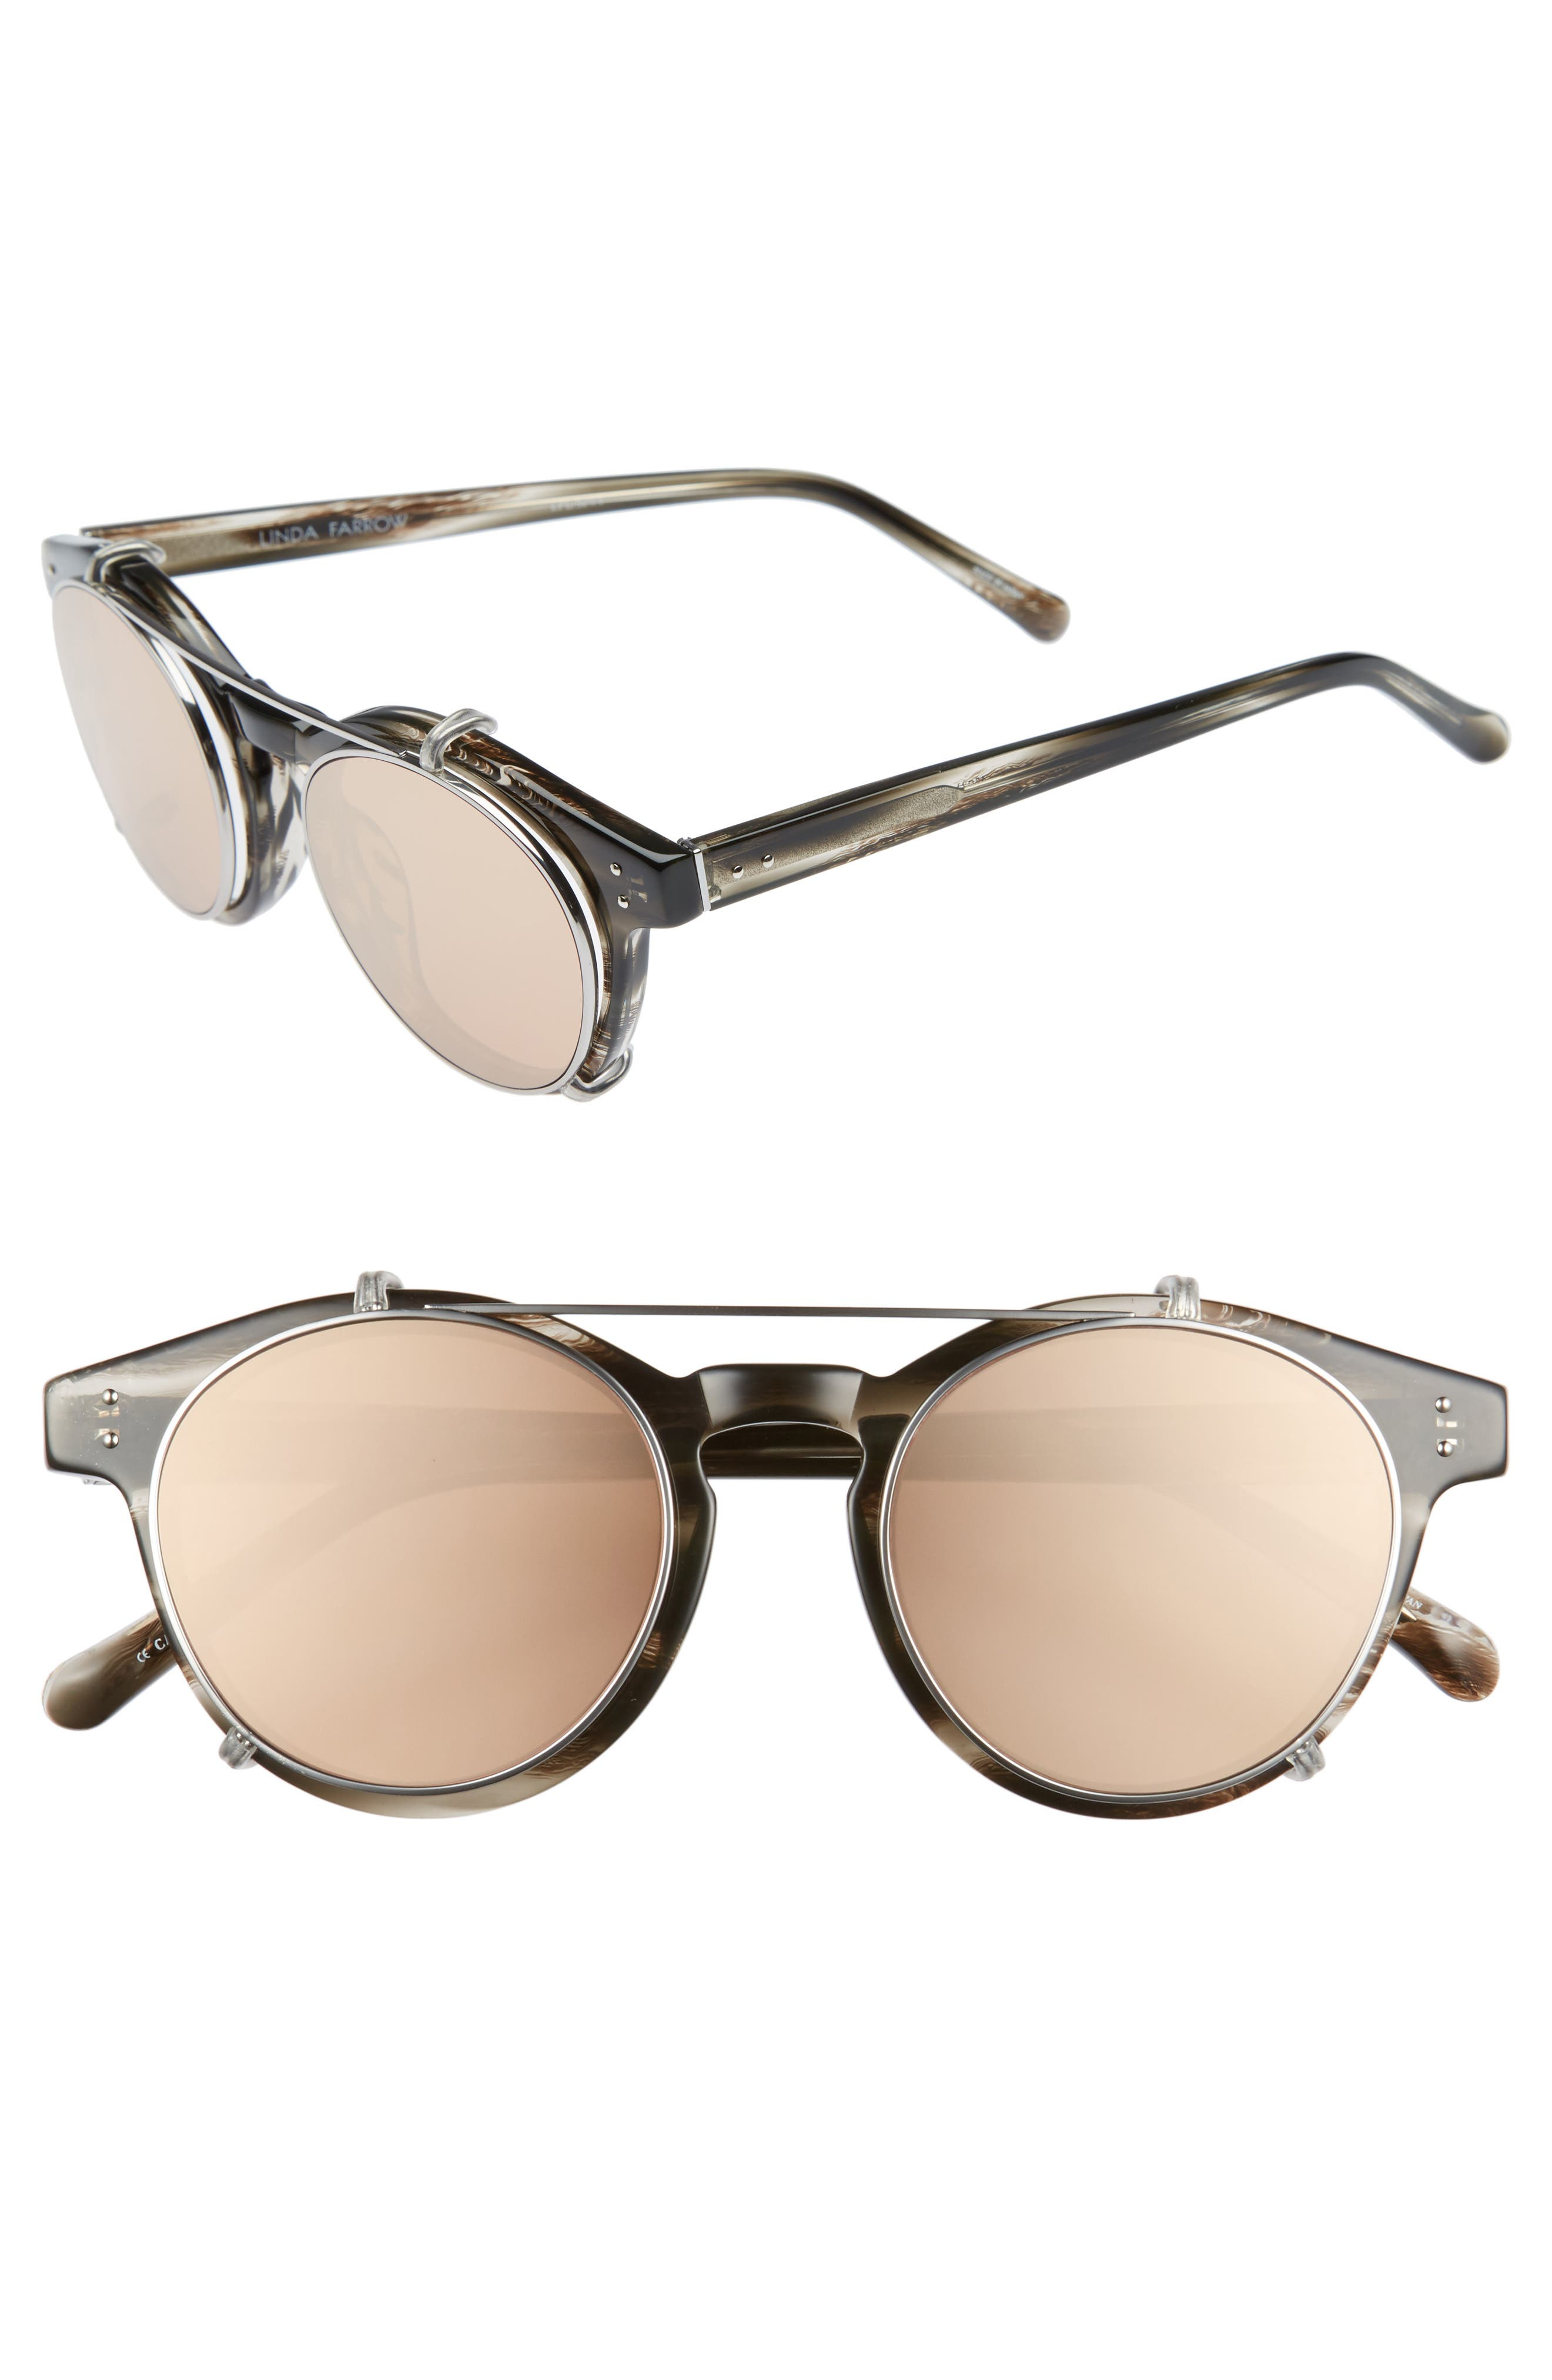 47mm Optical Glasses with Clip-On 18 Karat Rose Gold Trim Sunglasses,                         Main,                         color,